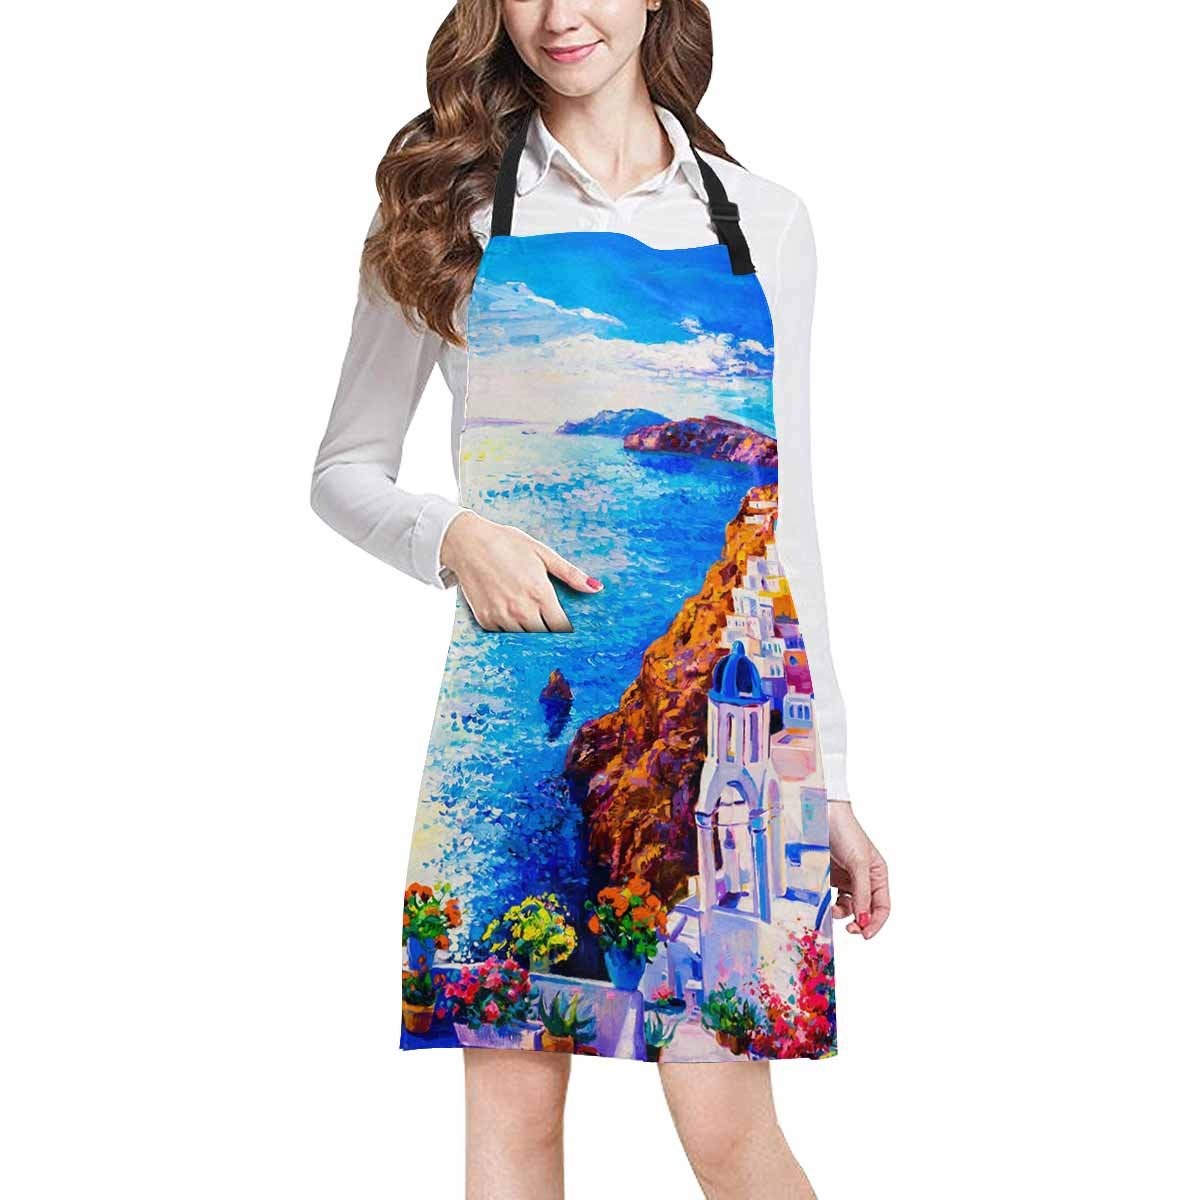 InterestPrint Beautiful European Cityscape Skyline of Oia Santorini Greece Unisex Adjustable Bib Apron with Pockets for Women Men Girls Chef for Cooking Baking Gardening Crafting, Large Size